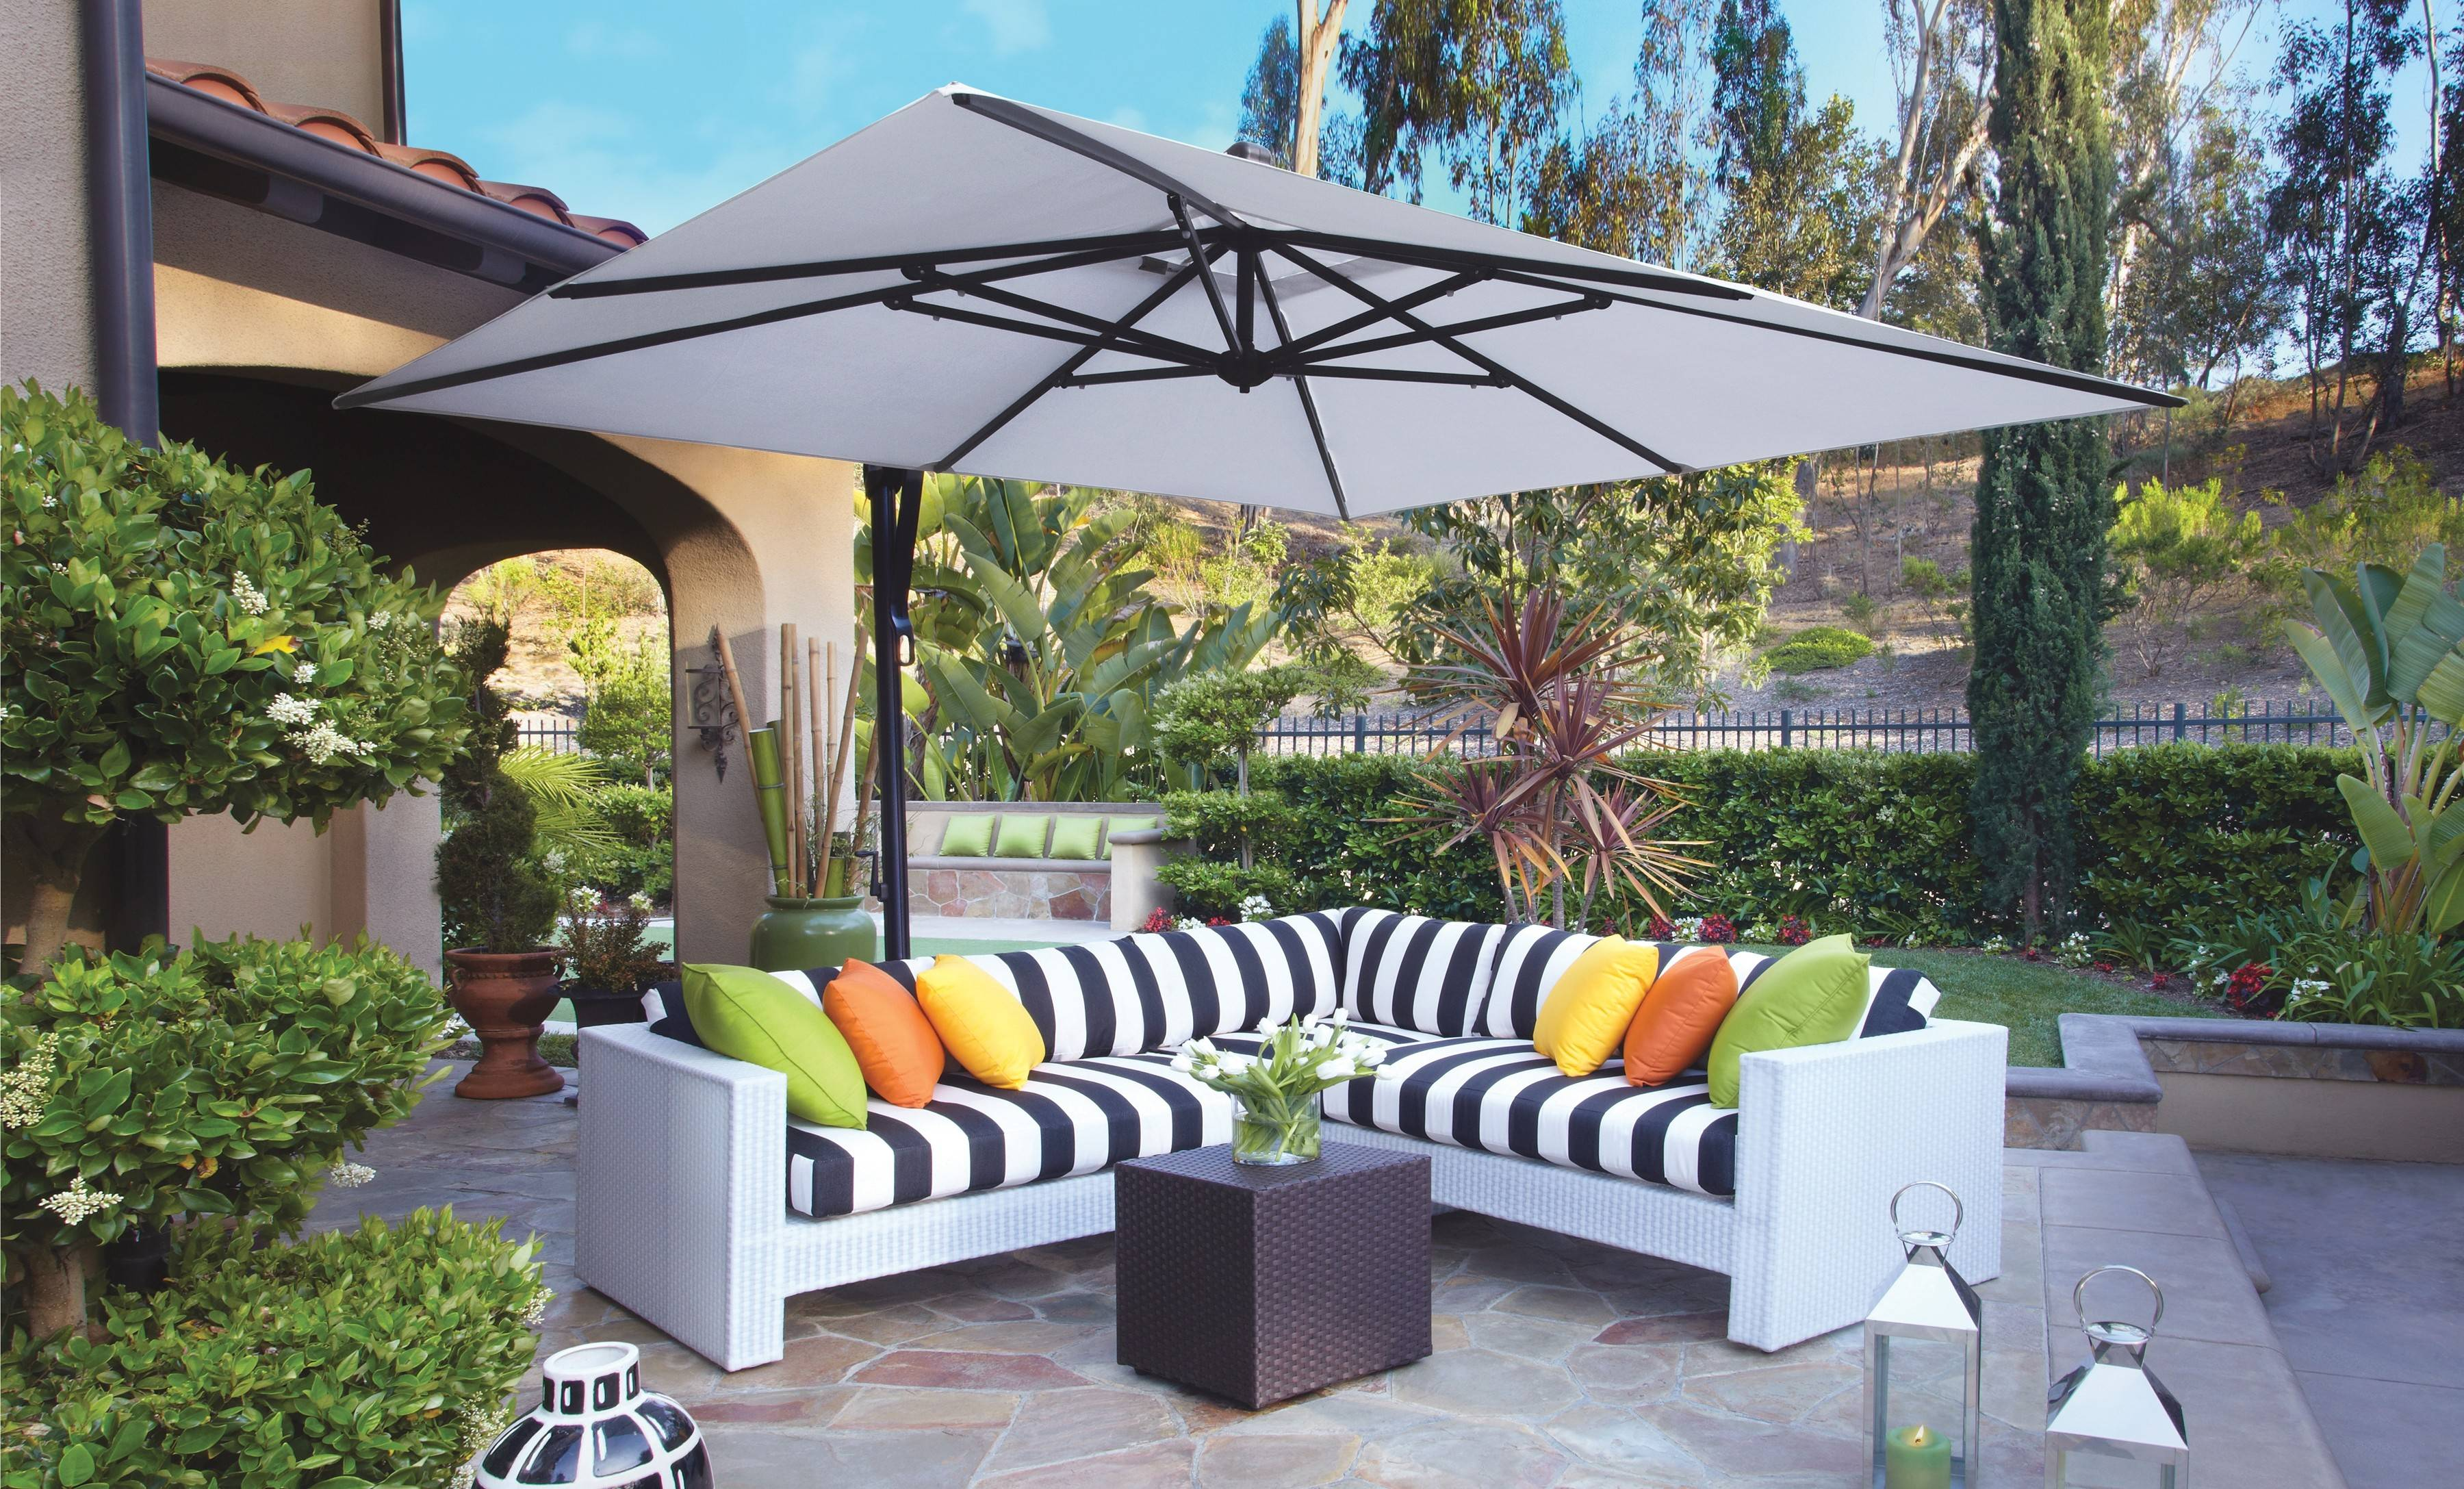 Patio umbrellas today can be freed from the table and shade a larger area.